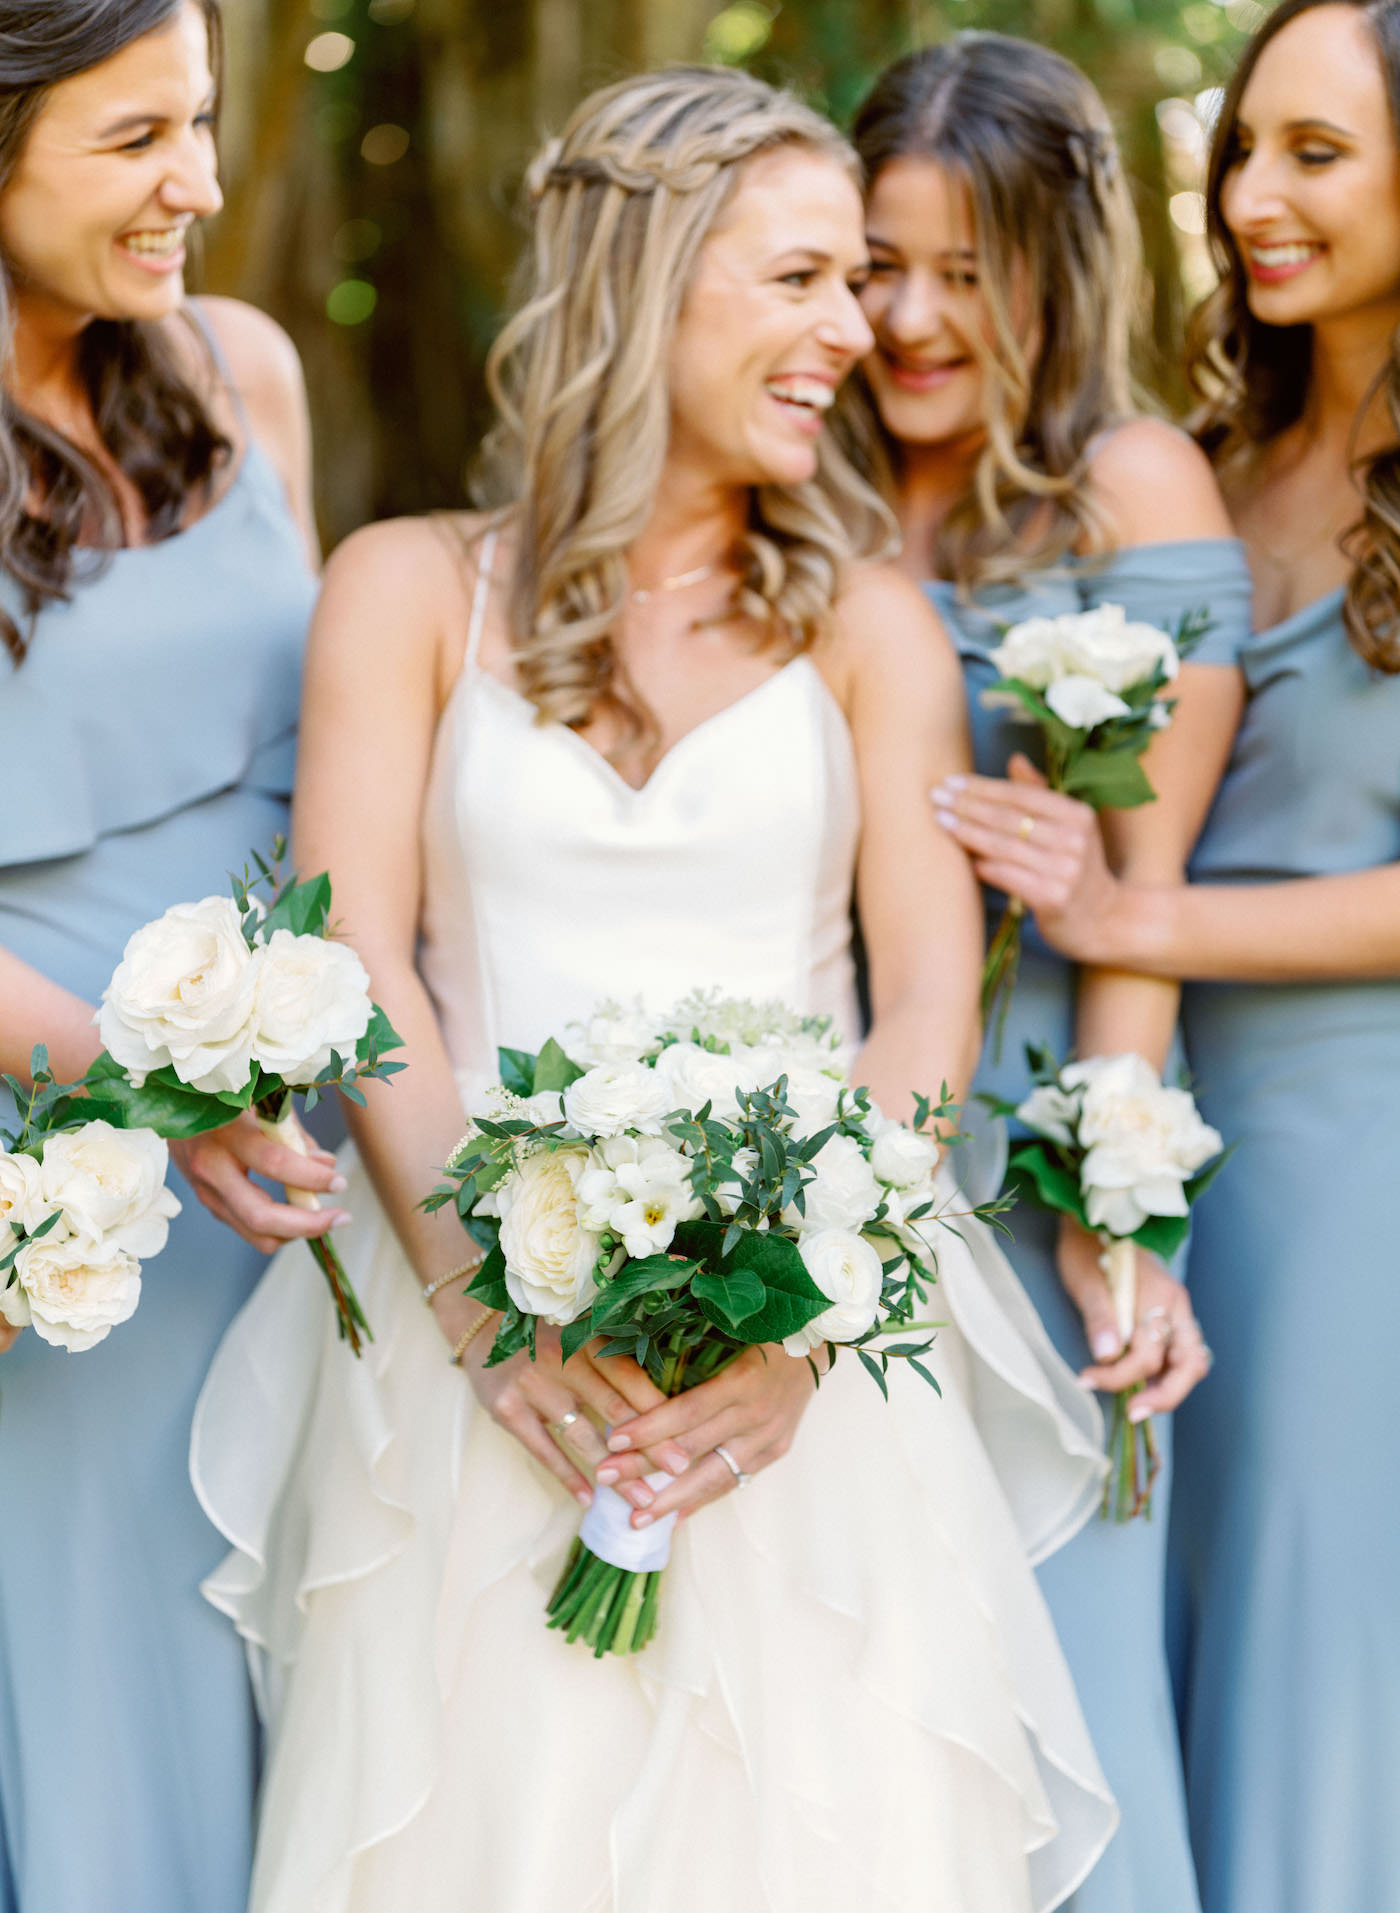 Florida Modern Bridal Party, Bridesmaids in Mix and Match Slate Gray Dresses, Holding Ivory and White Floral Bouquets with Greenery | Sarasota Wedding Planner NK Weddings